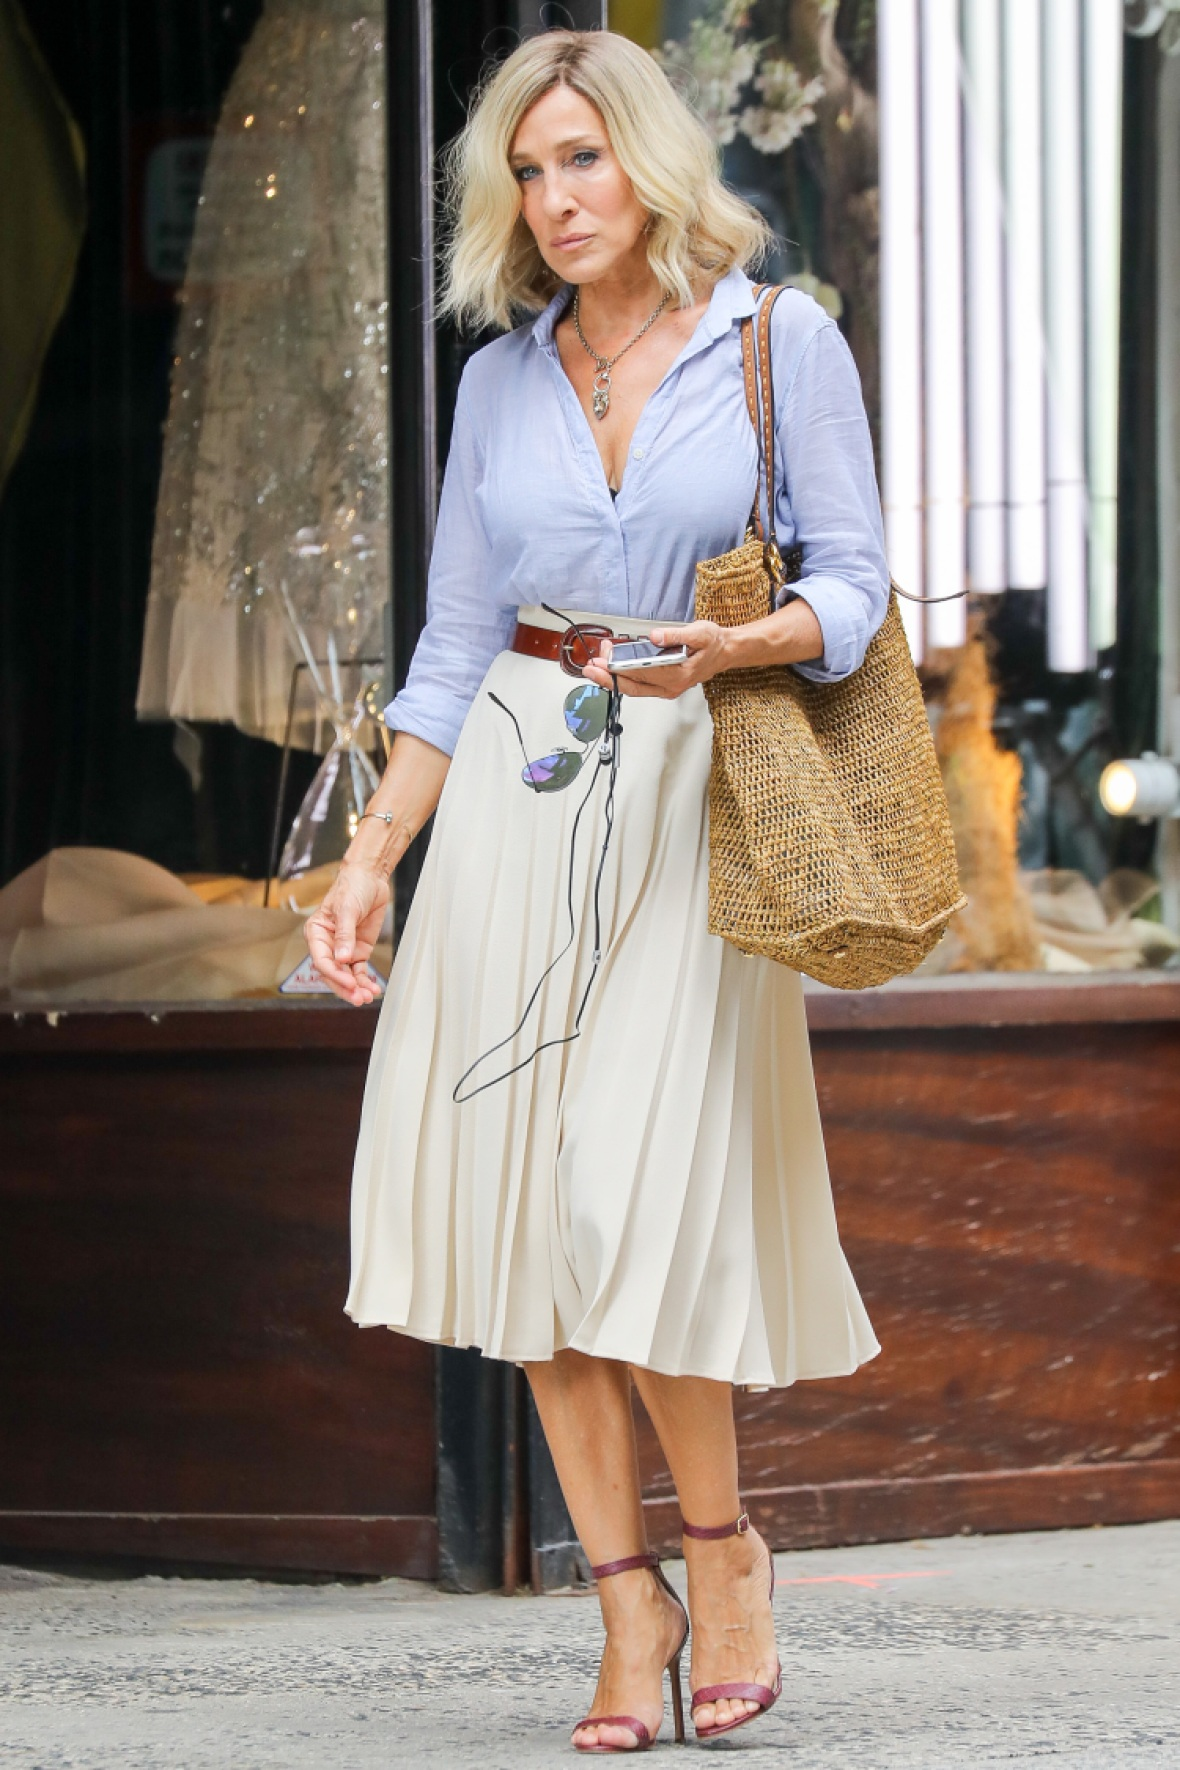 Sarah Jessica Parker Debuts Short Hair For Upcoming Movie Role